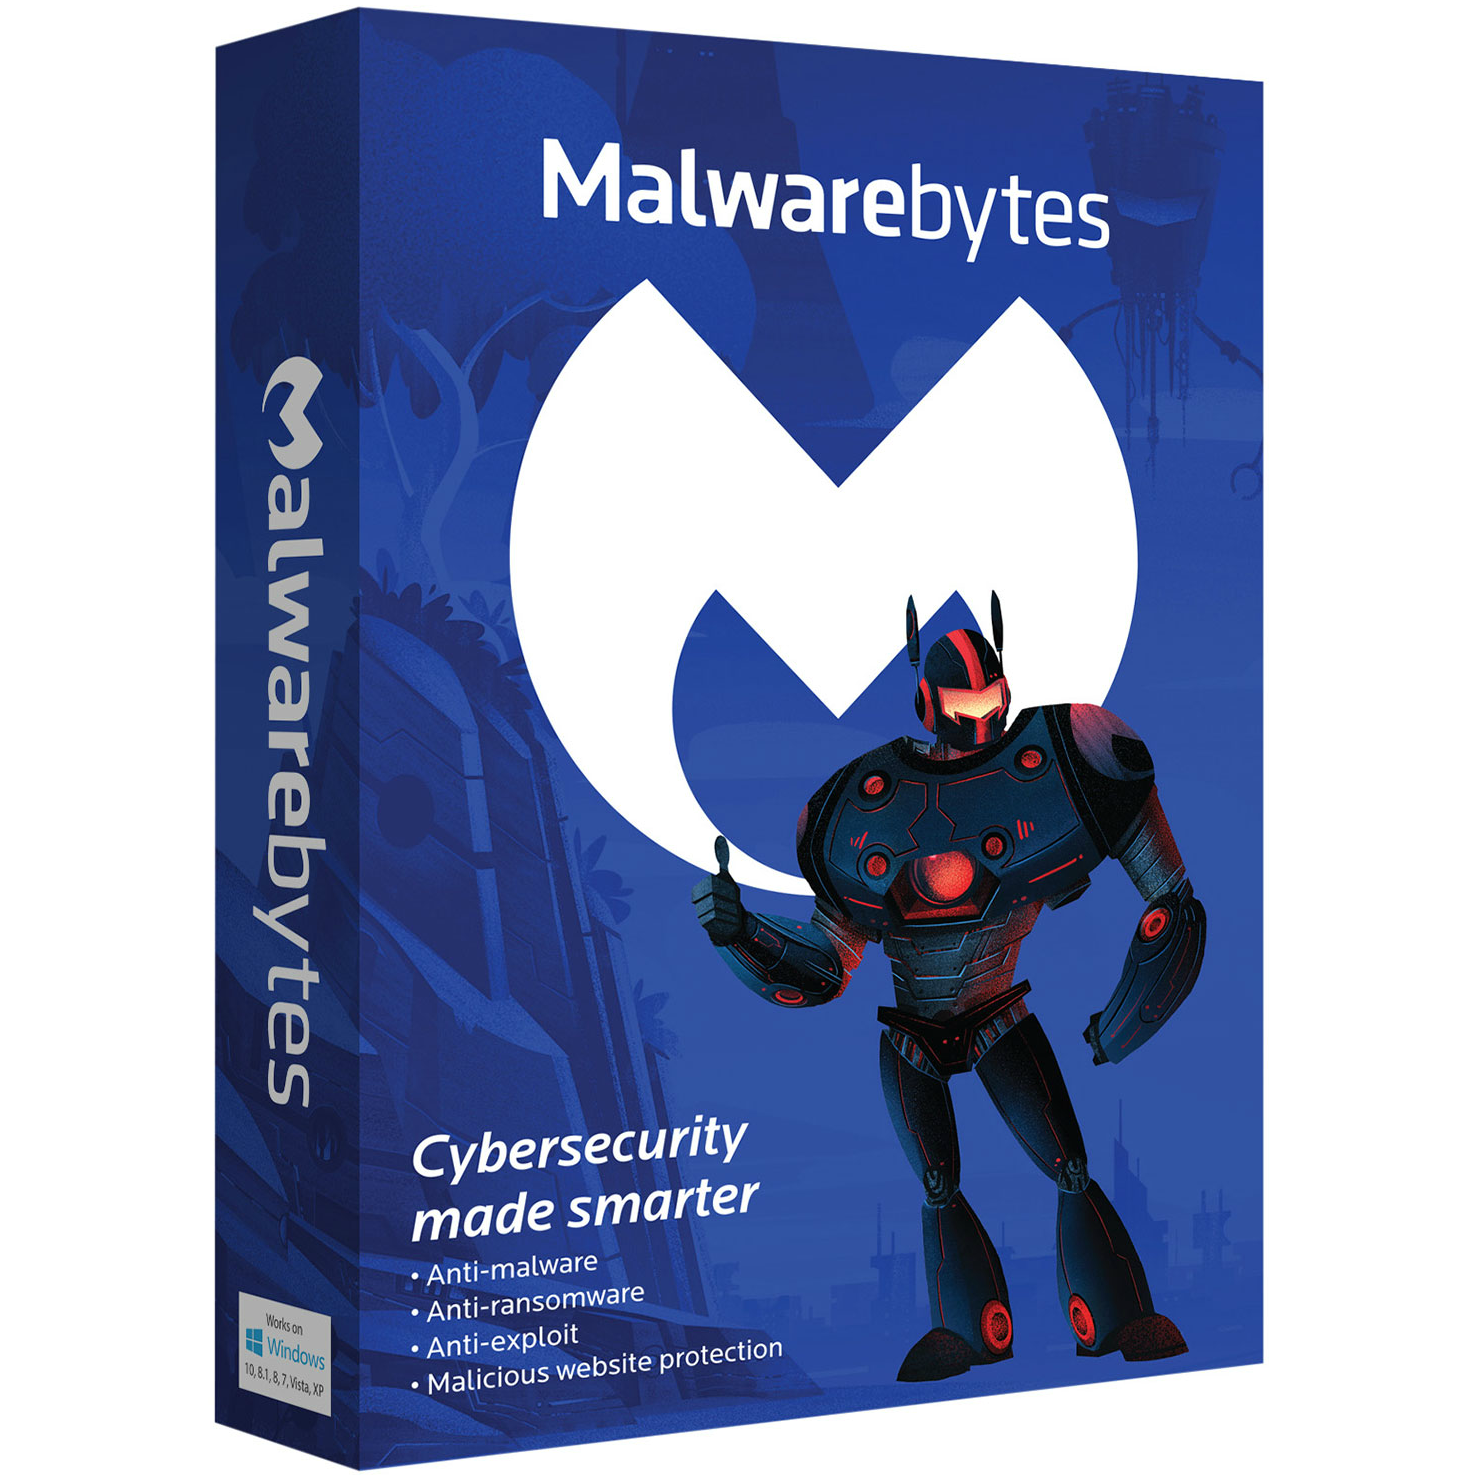 Malwarebytes 3.7.1 Crack with Serial Key Free Here!